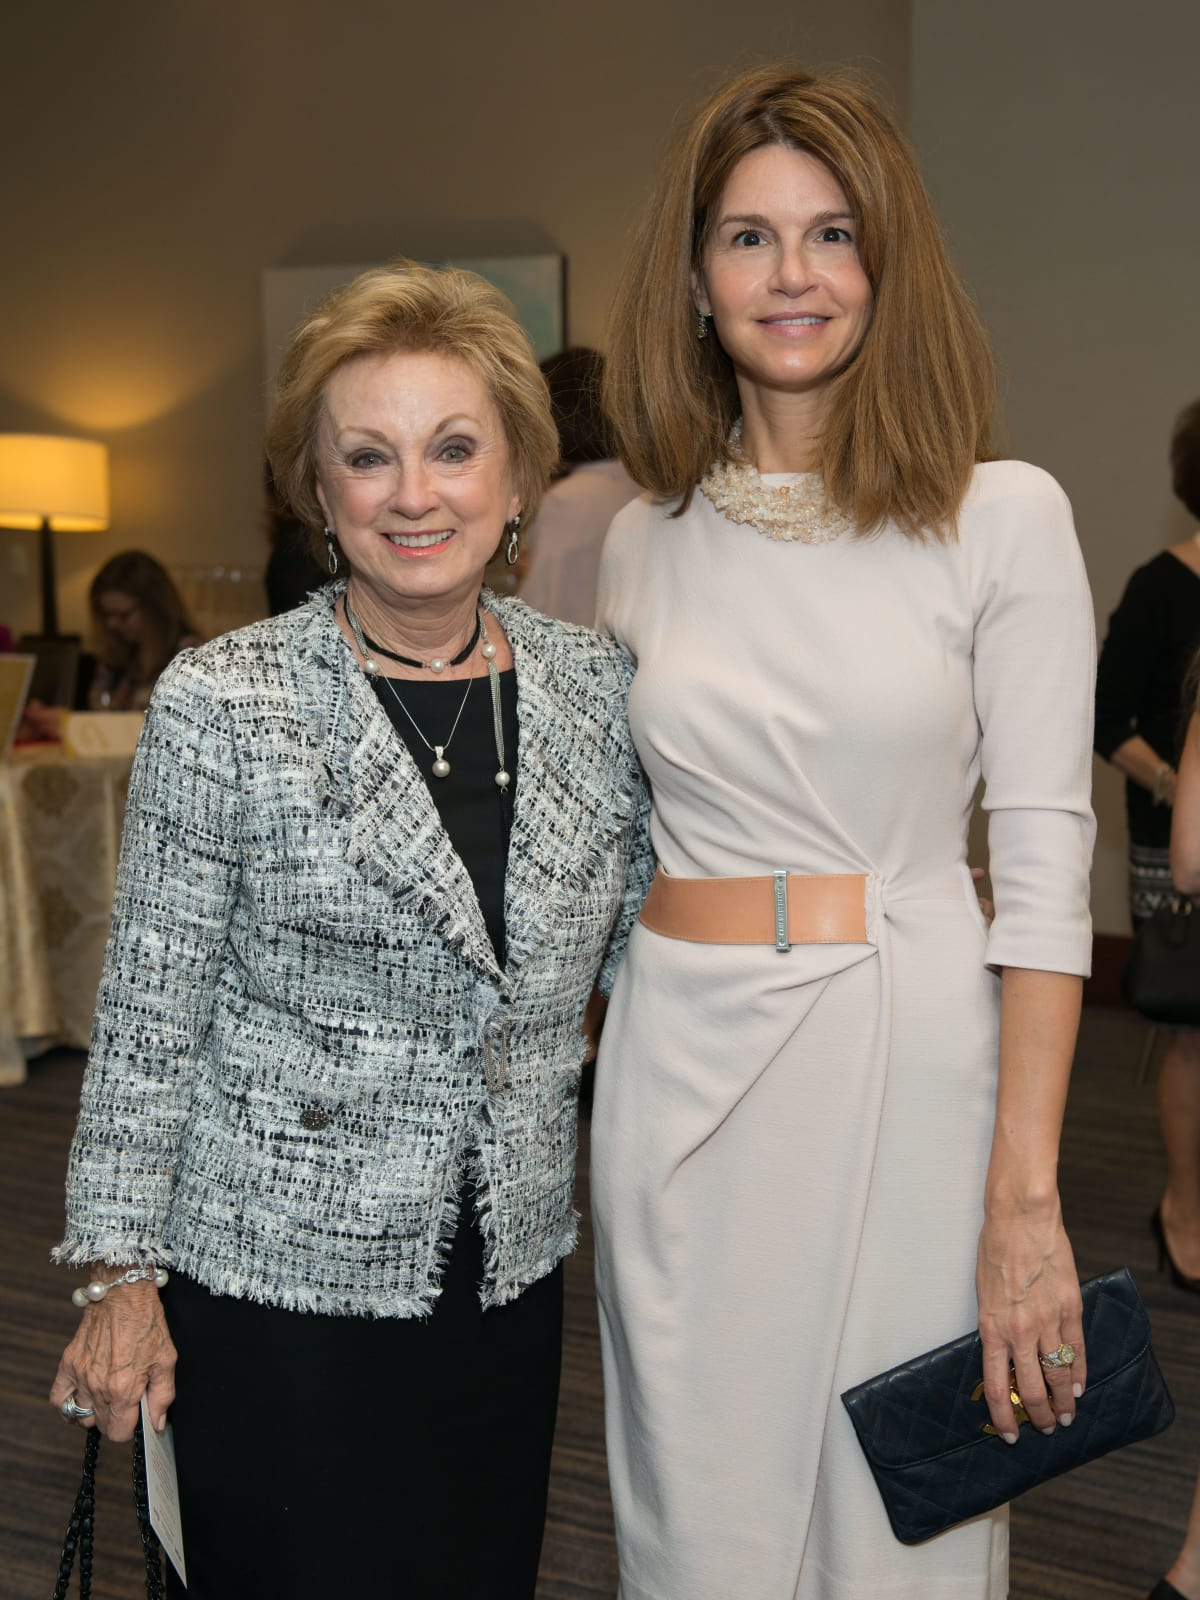 Suzie Johnson, Tatiana Seligman at Memorial Hermann Razzle Dazzle luncheon